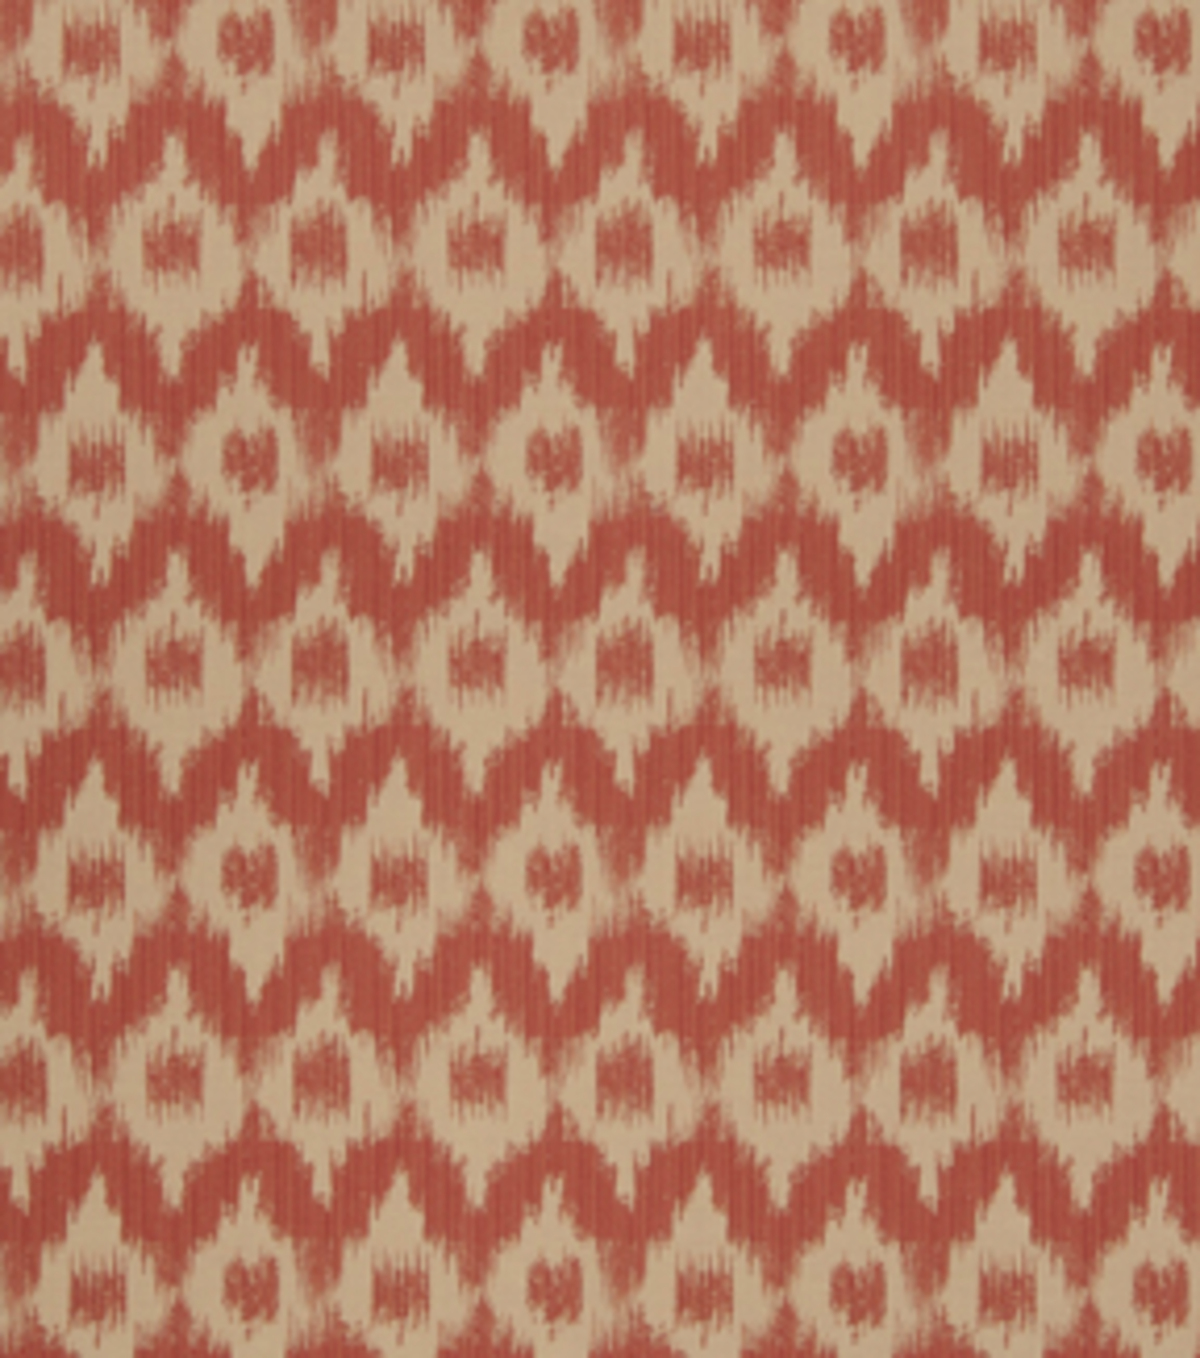 Home Decor 8\u0022x8\u0022 Fabric Swatch-French General  Cecilia Rouge